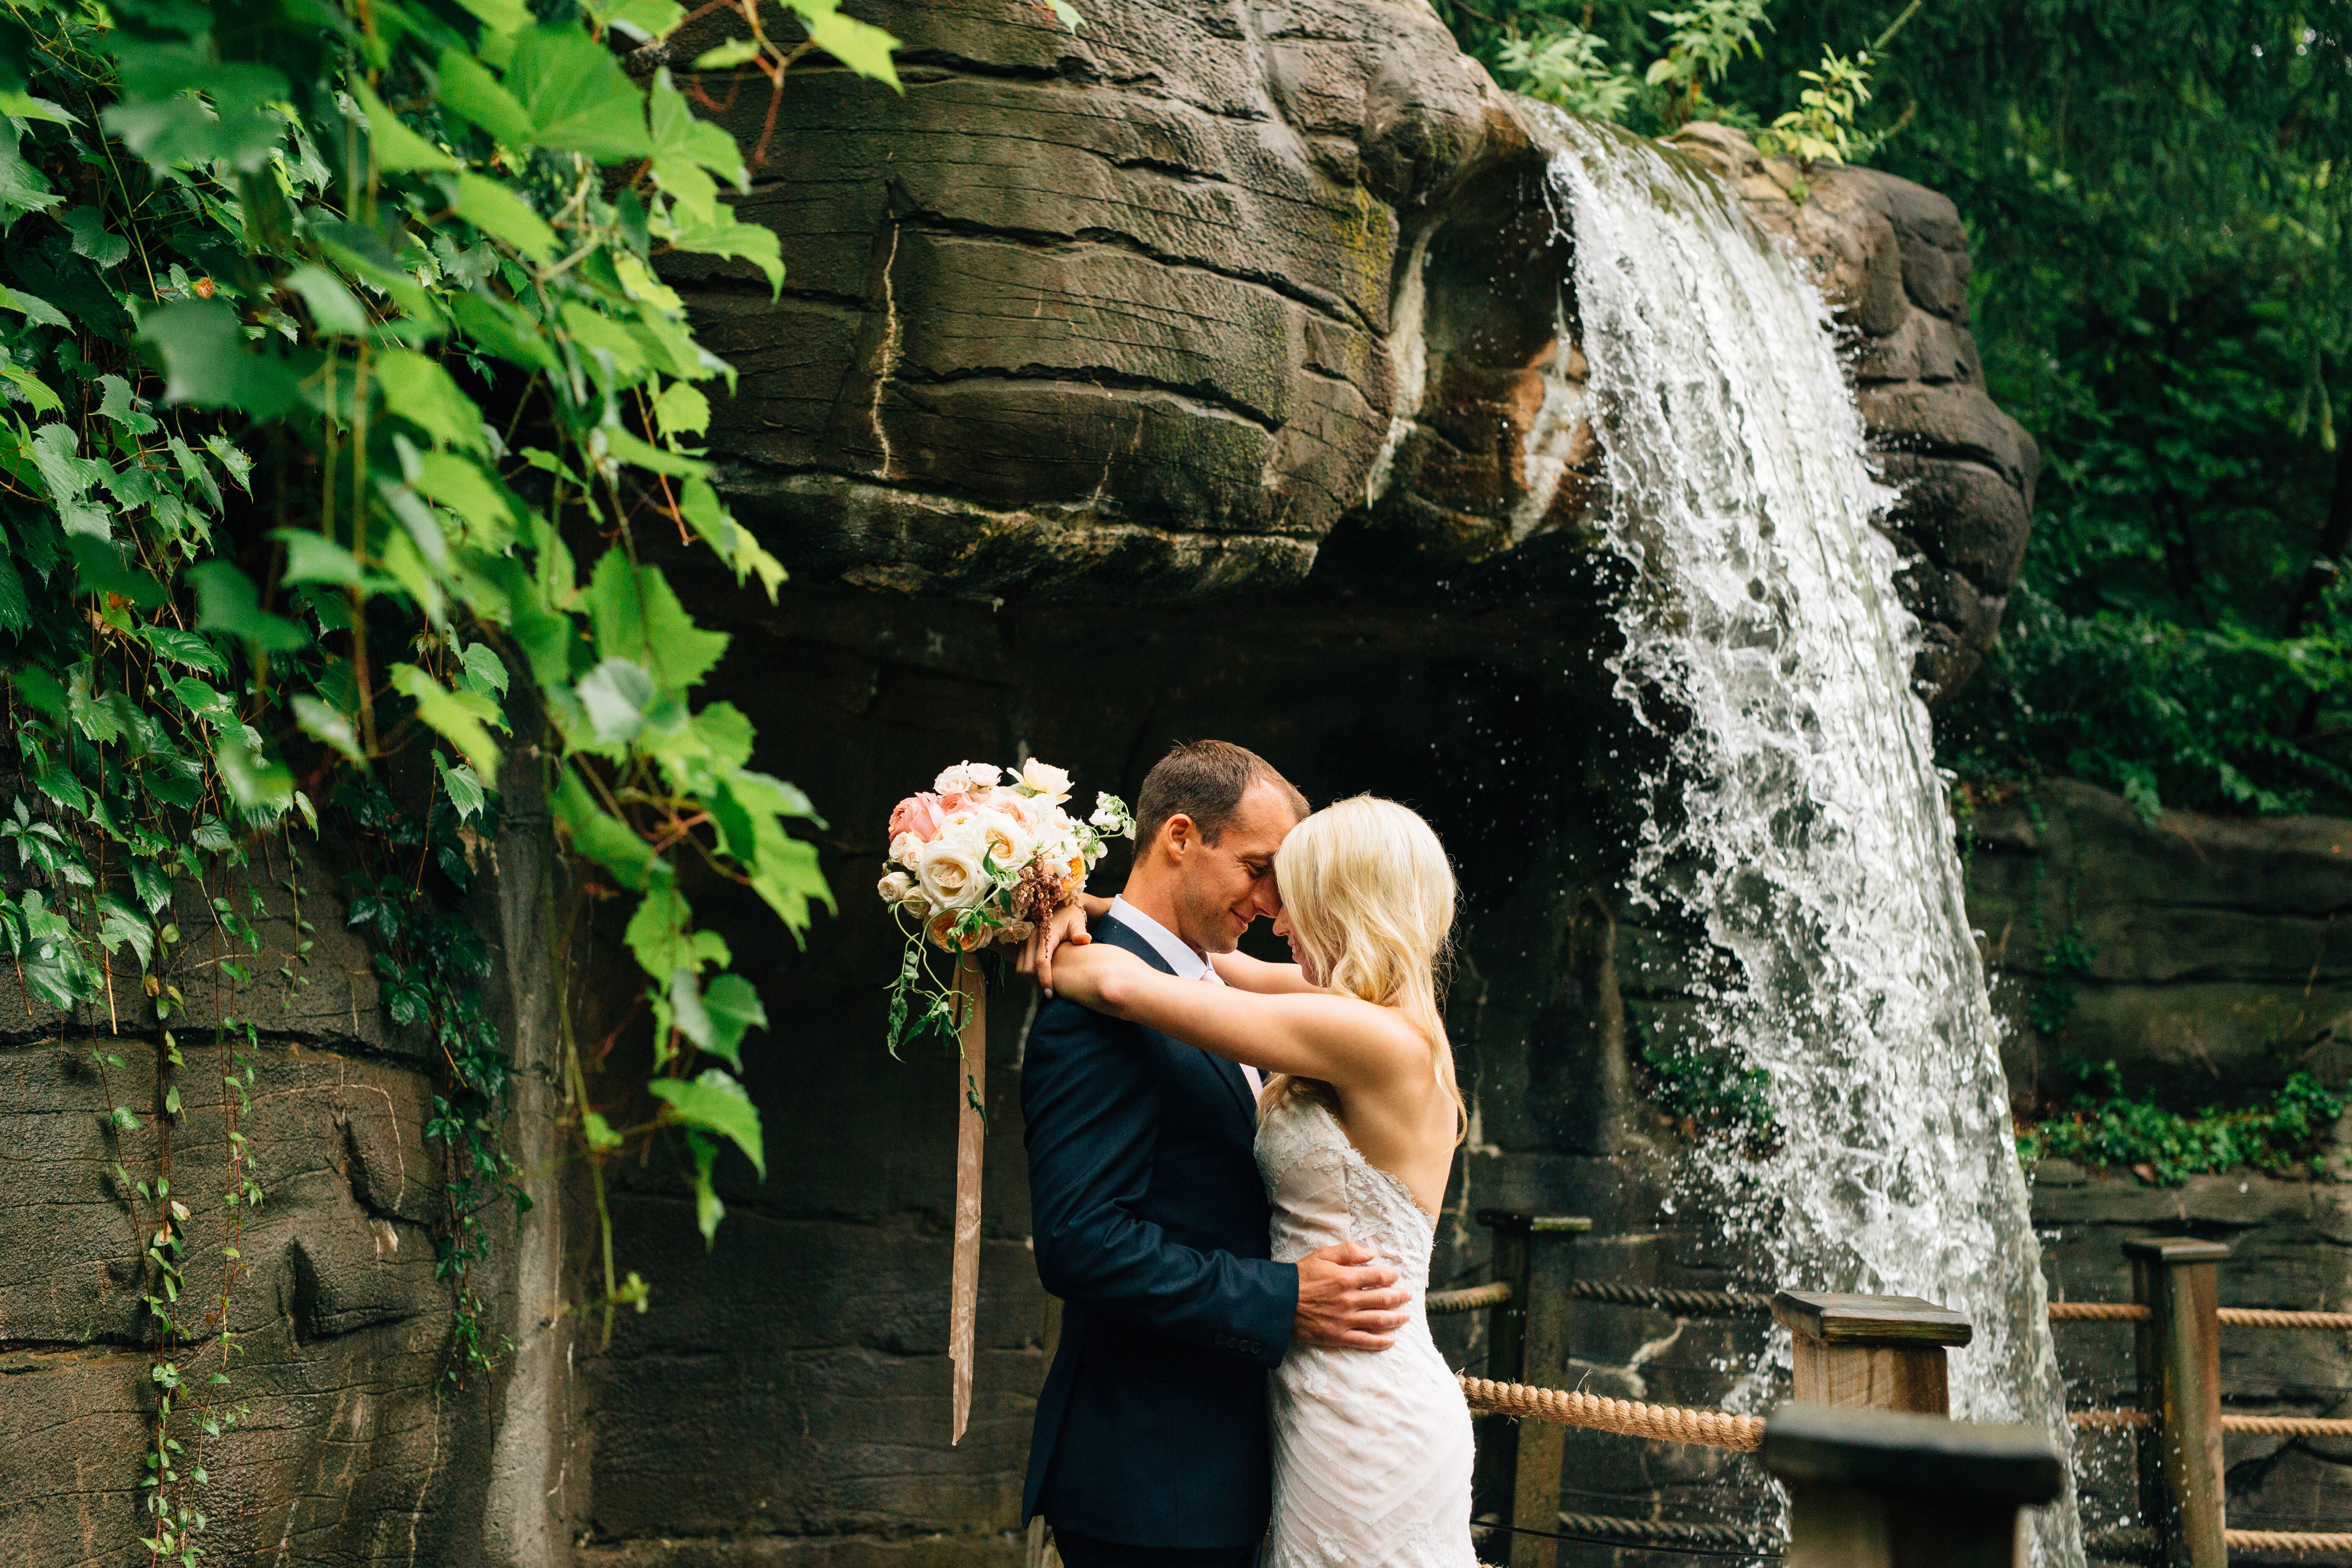 A Whimsical Treehouse Wedding At The John Ball Zoo Bissell